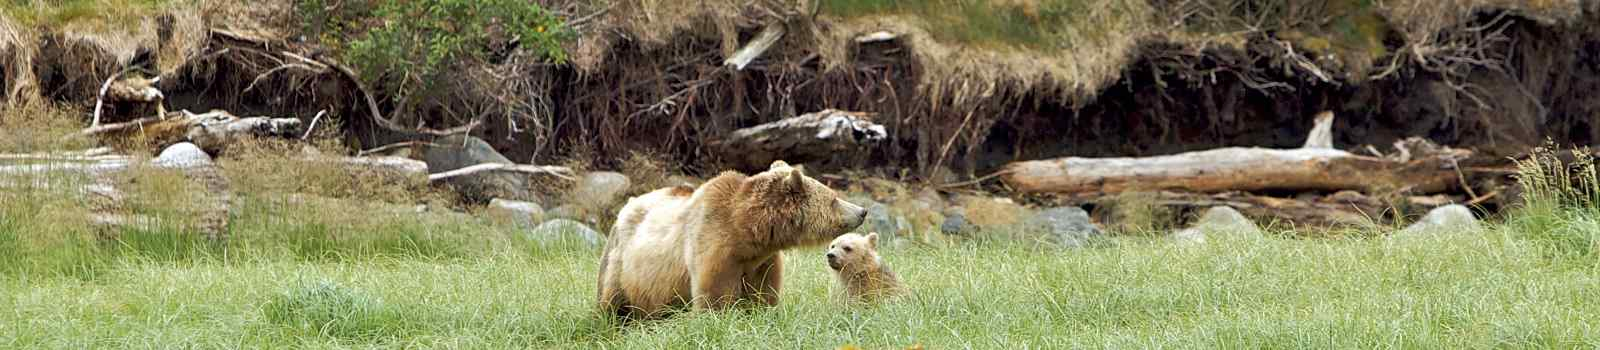 CAD-RM-JTCE Kanada Vancouver Island Grizzly bear in Canadian nature playing with cub